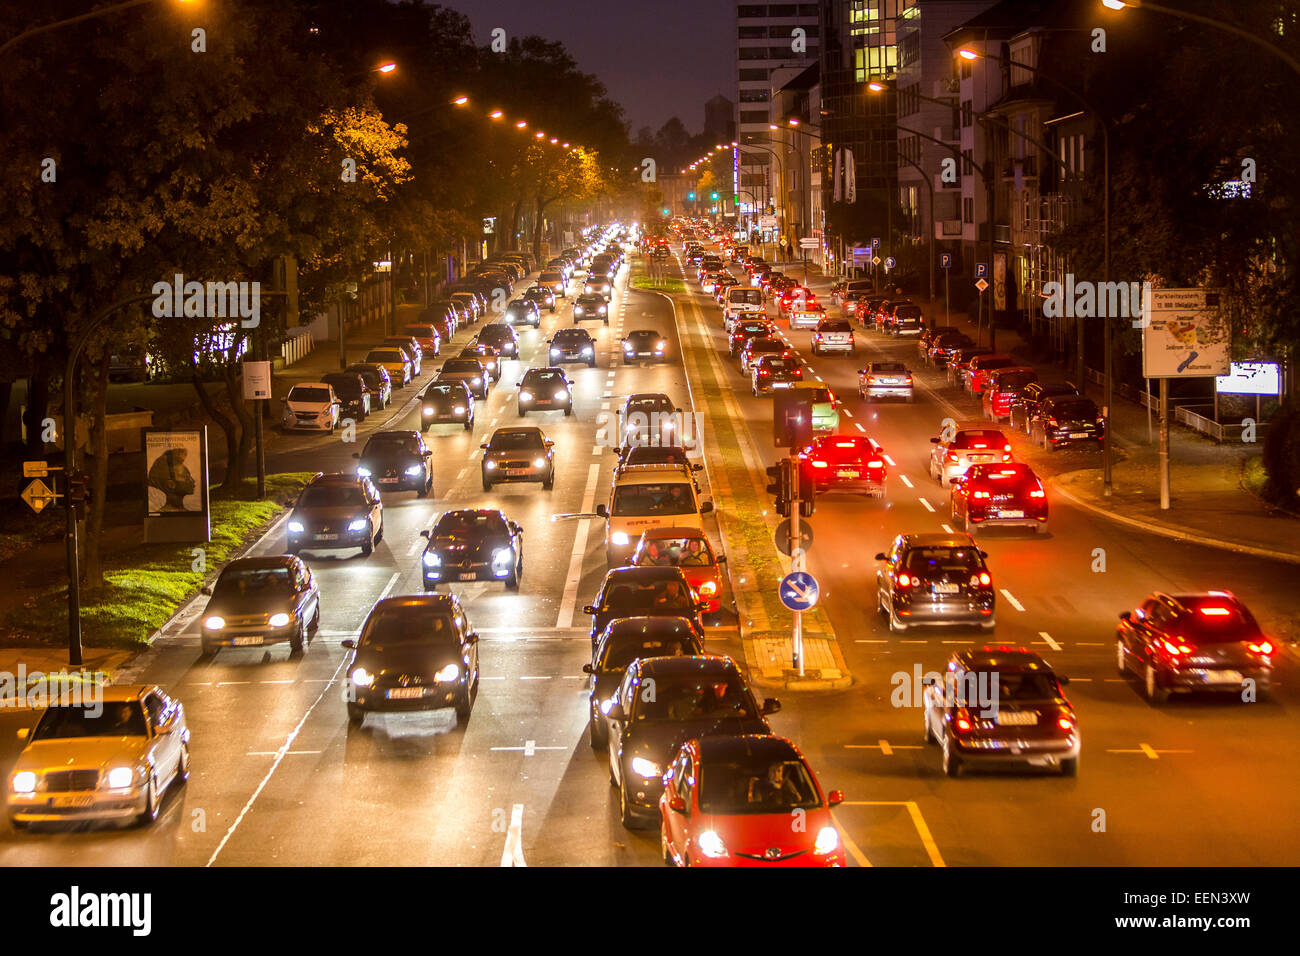 Rush hour in the evening, Alfred Street, Essen, Germany - Stock Image